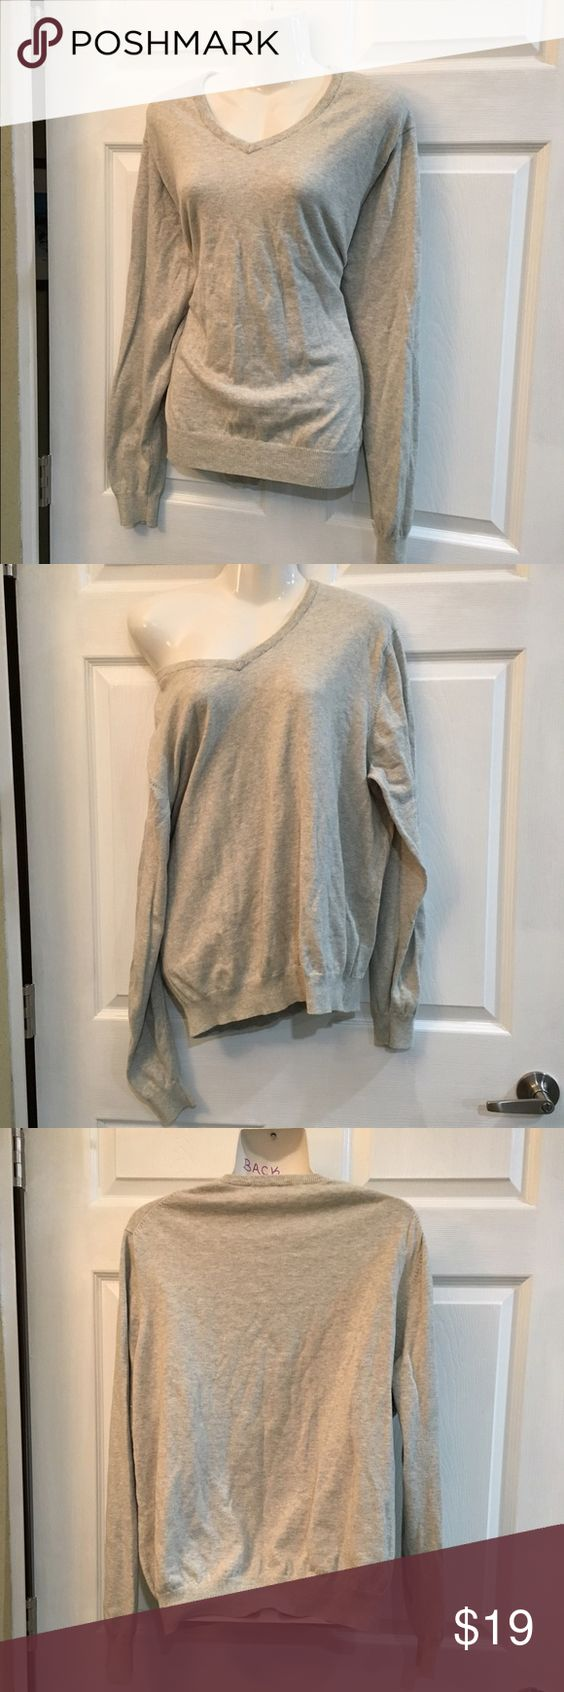 Light gray sweater merona Never worn only tried on & washed once Merona Sweaters